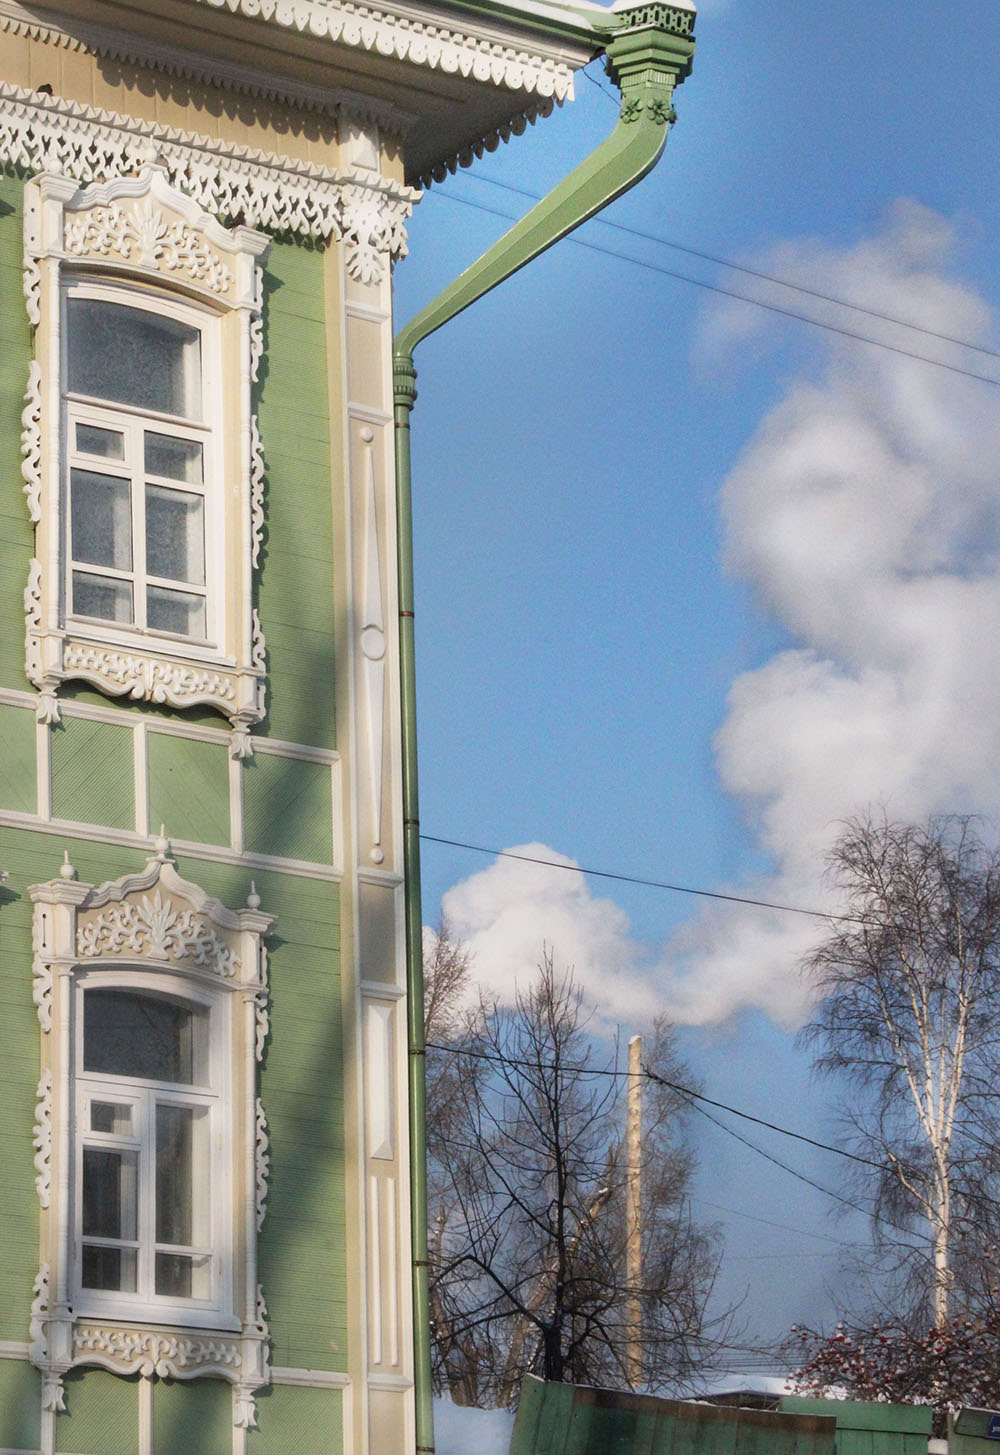 Tomsk Wooden Lace Architecture